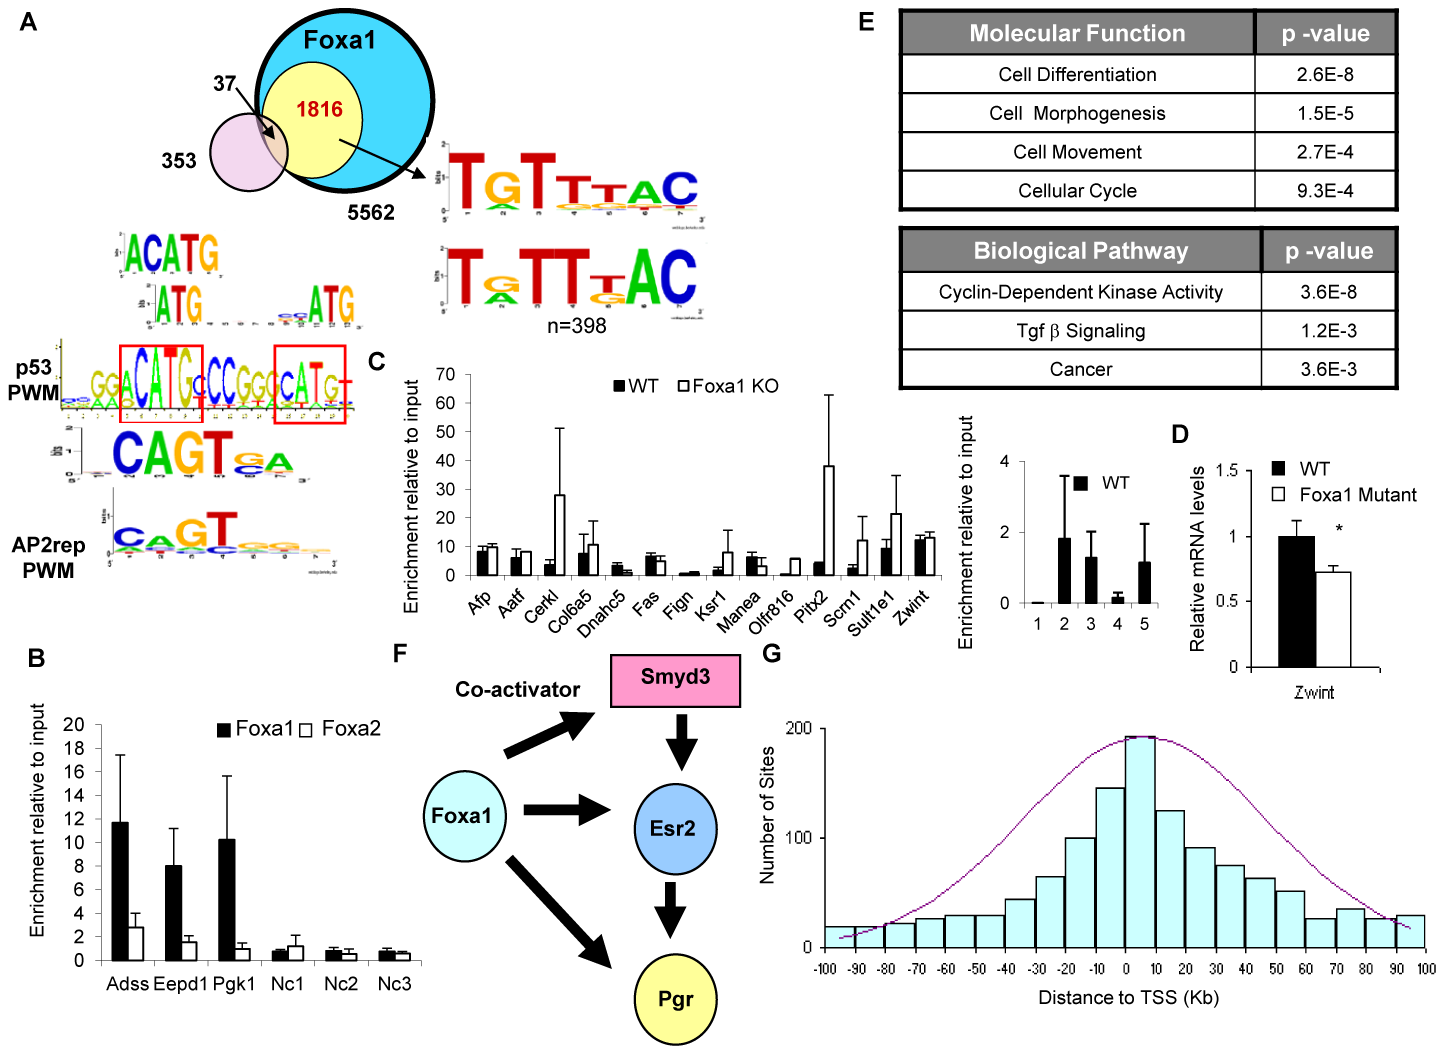 Foxa1-Specific Targets Are Enriched for p53 Binding Sites.